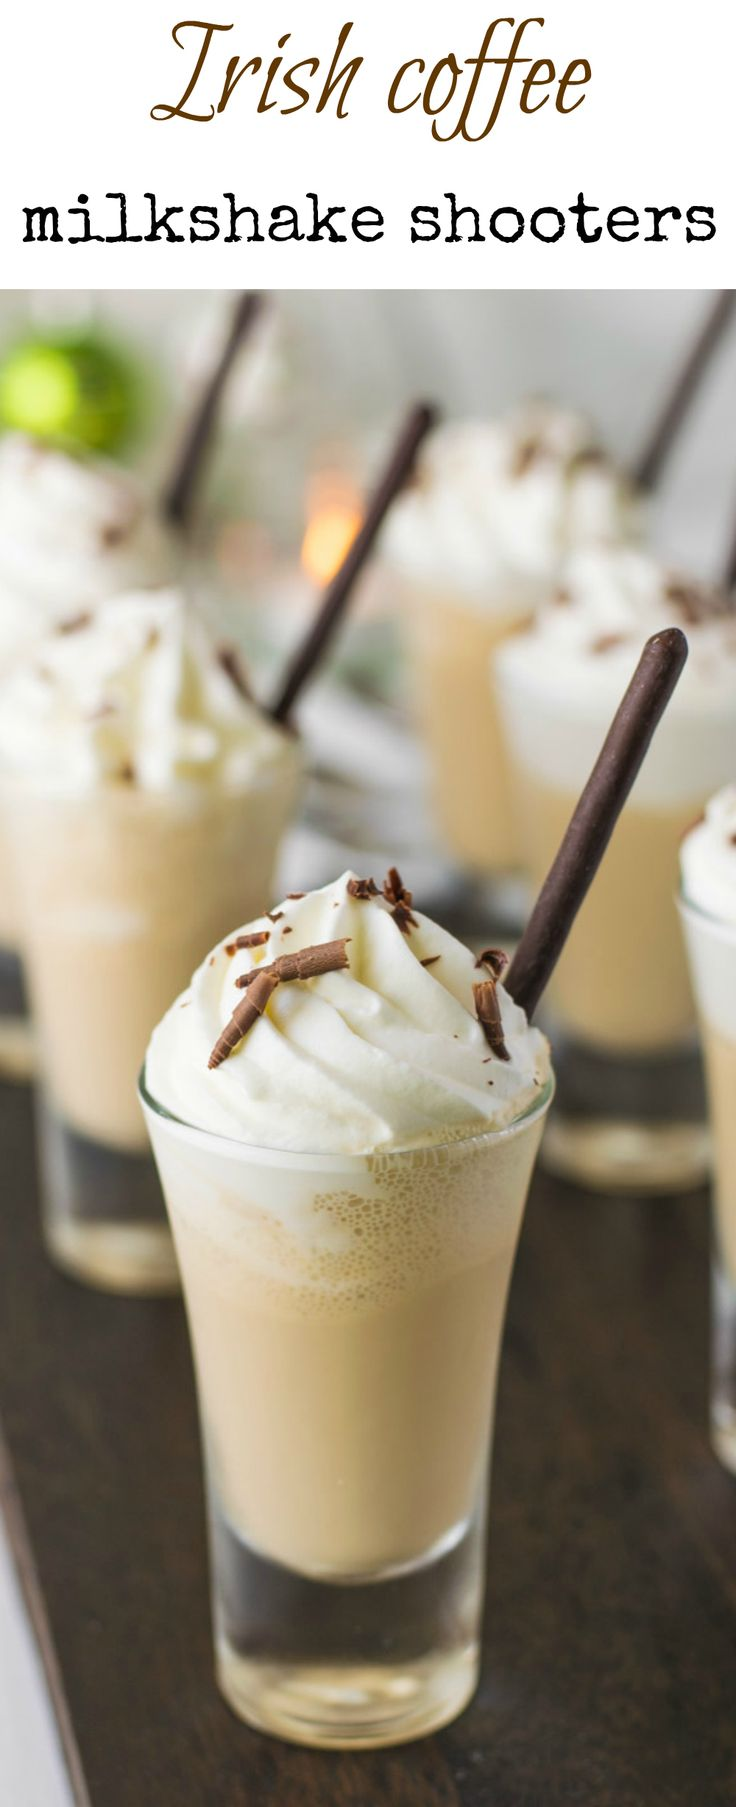 Irish coffee milkshake shooters are easy, fun, grown-up individual desserts perfect for parties, entertaining and St Patrick's Day. Irish cream liqueur is blended with coffee ice cream,topped with whipped cream and chocolate shavings. #newyearseve #party